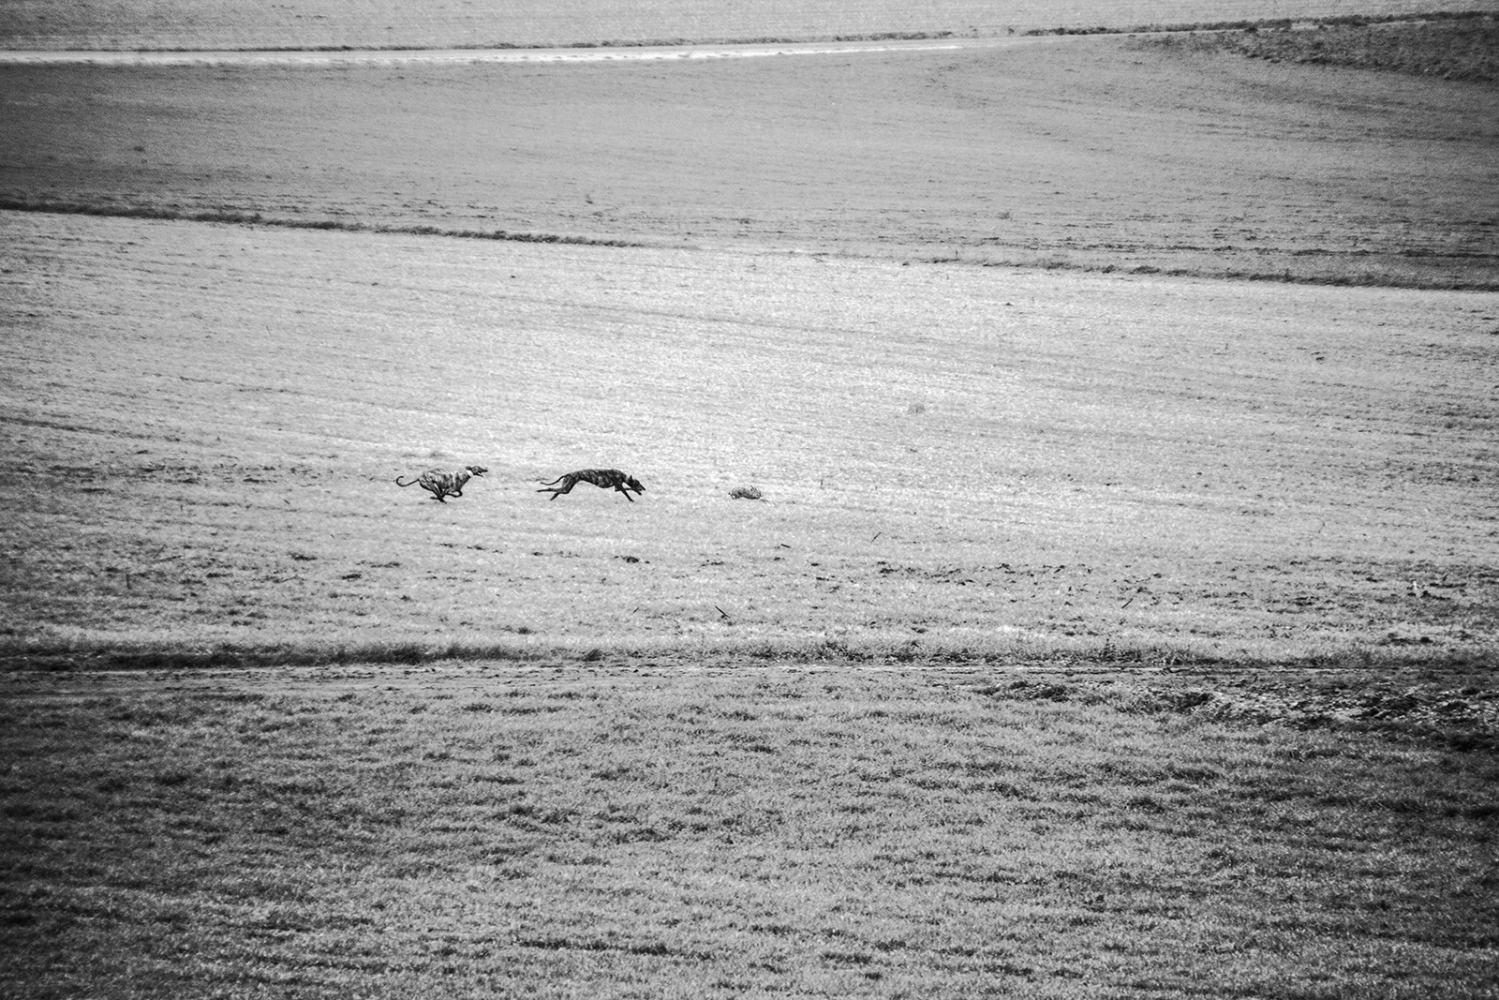 Hunting greyhounds. Hares reach up to speeds of 75 km /h. Valladolid, Castilla y León . Spain